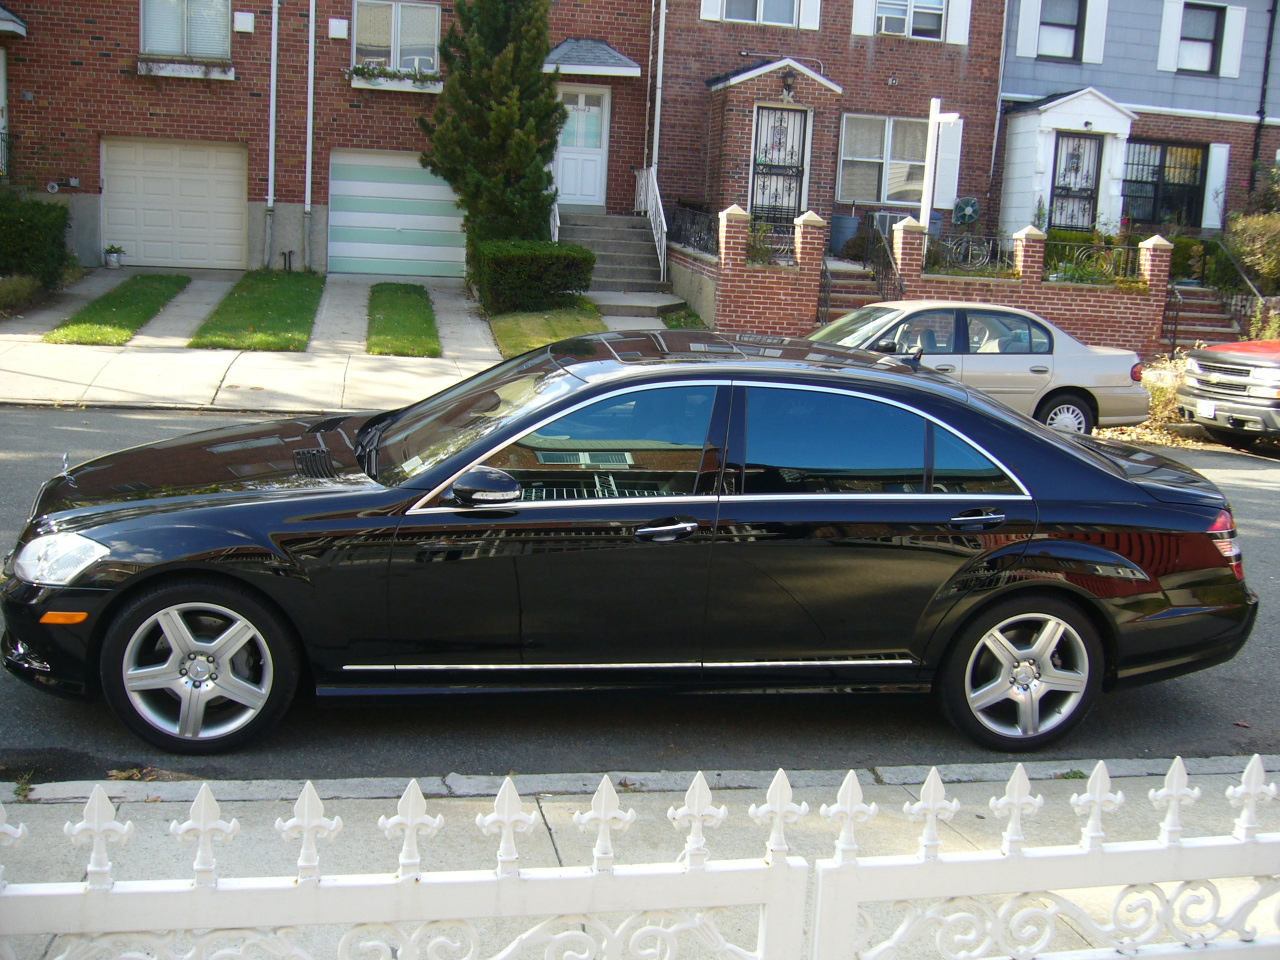 2007 mercedes benz s class pictures cargurus for Mercedes benz s550 pictures